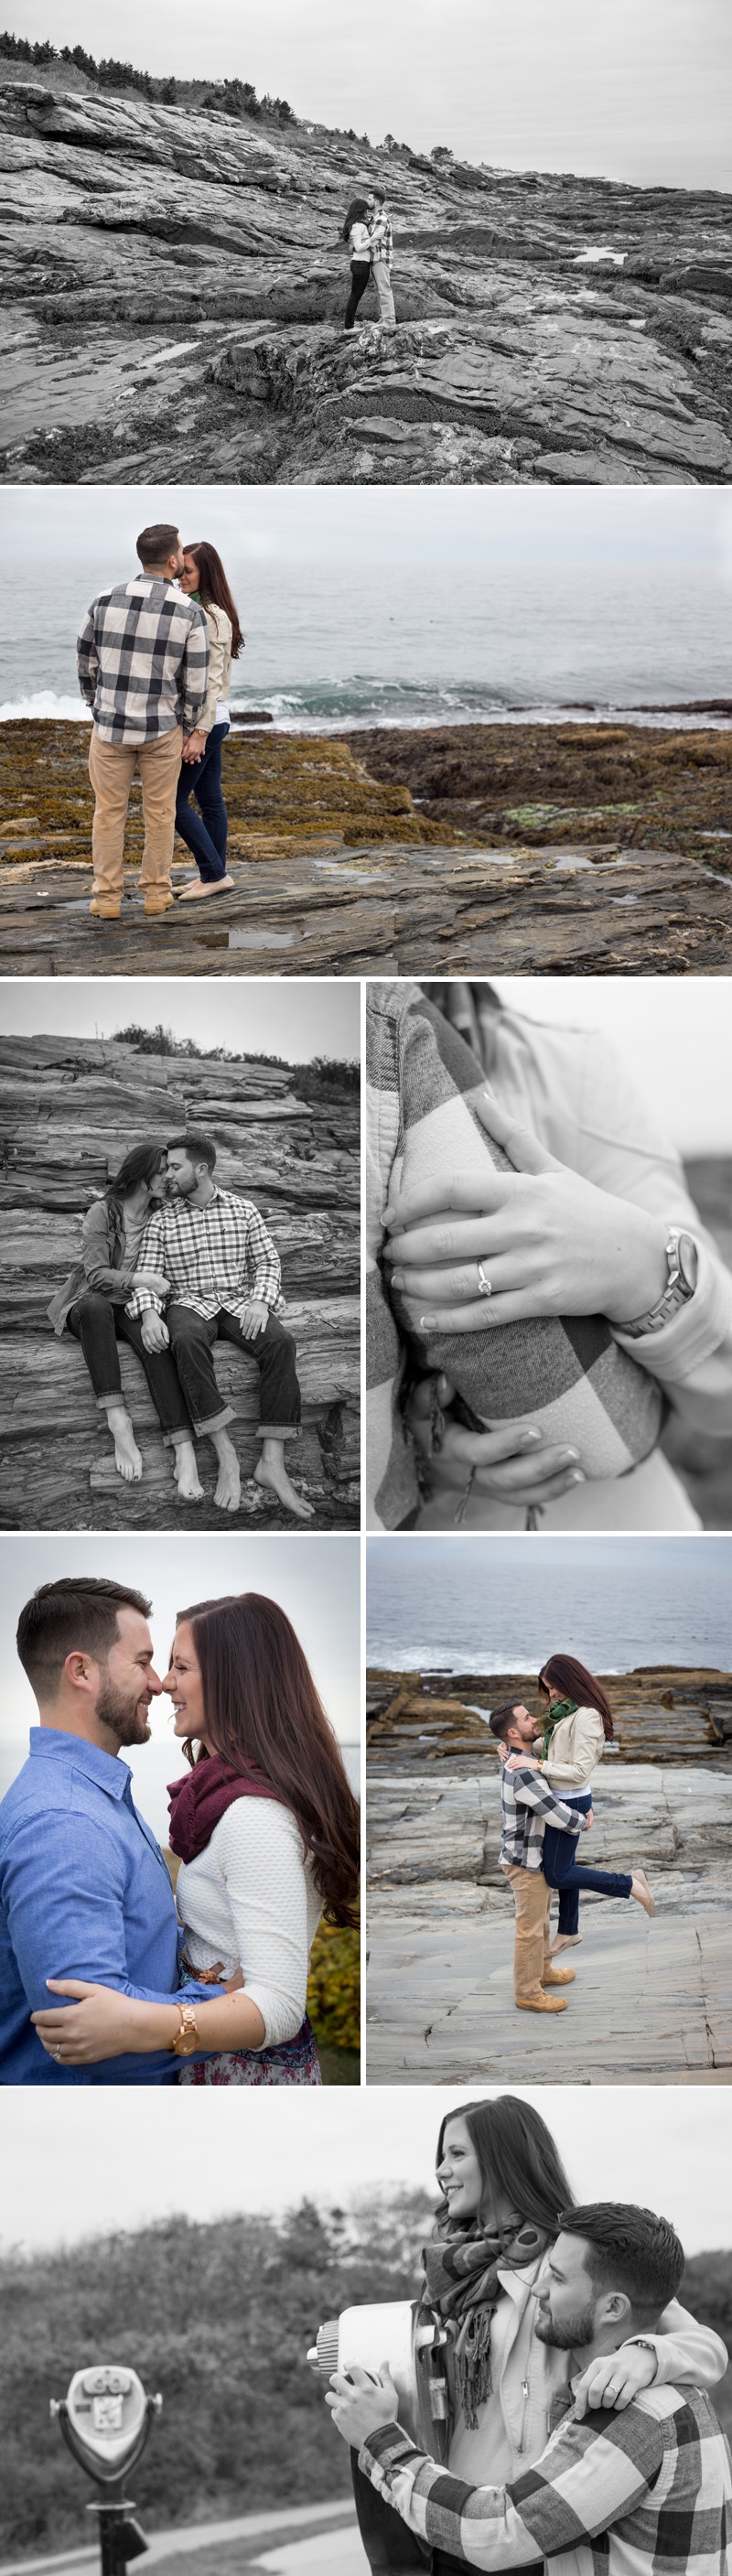 02-double-h-photography-beach-engagement-maine.jpg